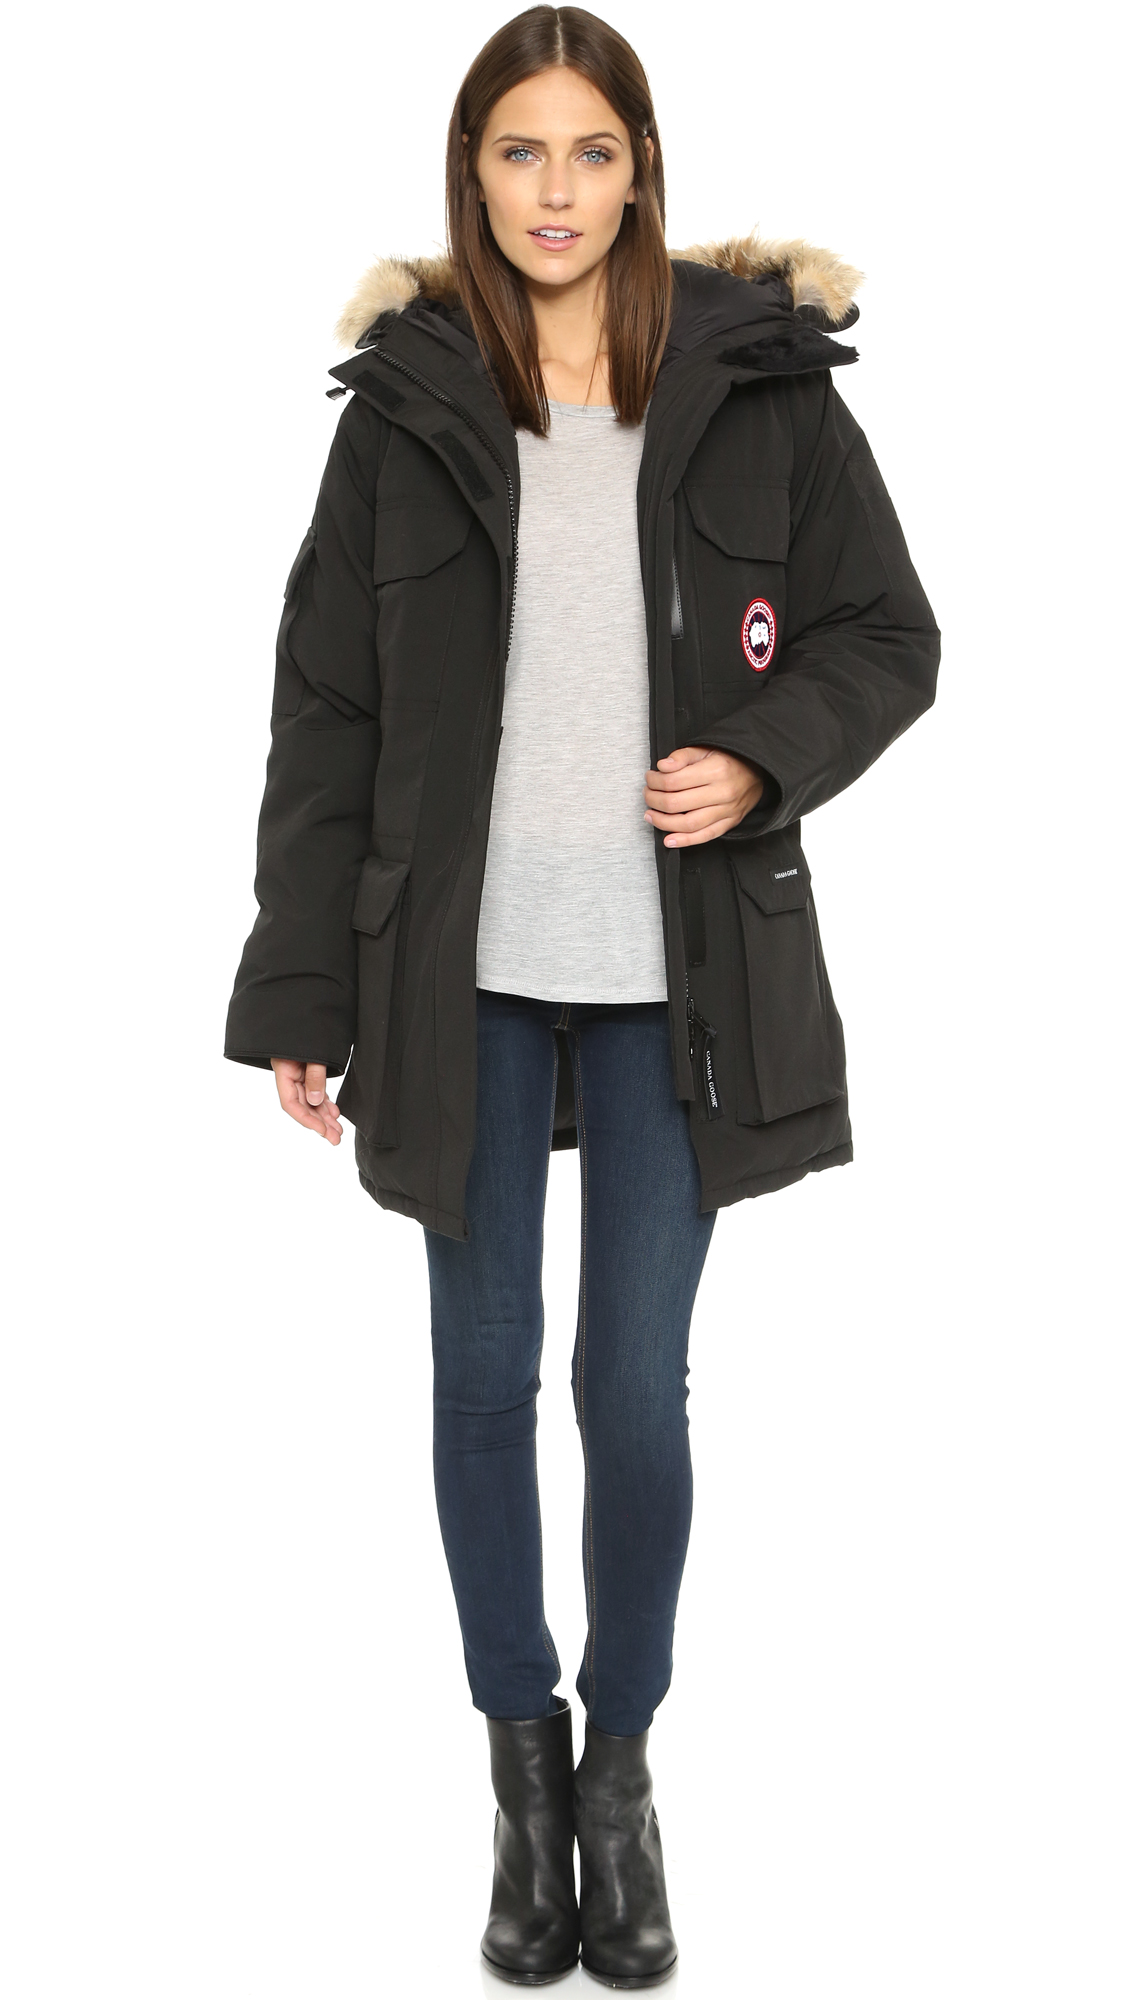 Canada Goose Expedition Parka | SHOPBOP SAVE UP TO 25% Use Code: STOCKUP18